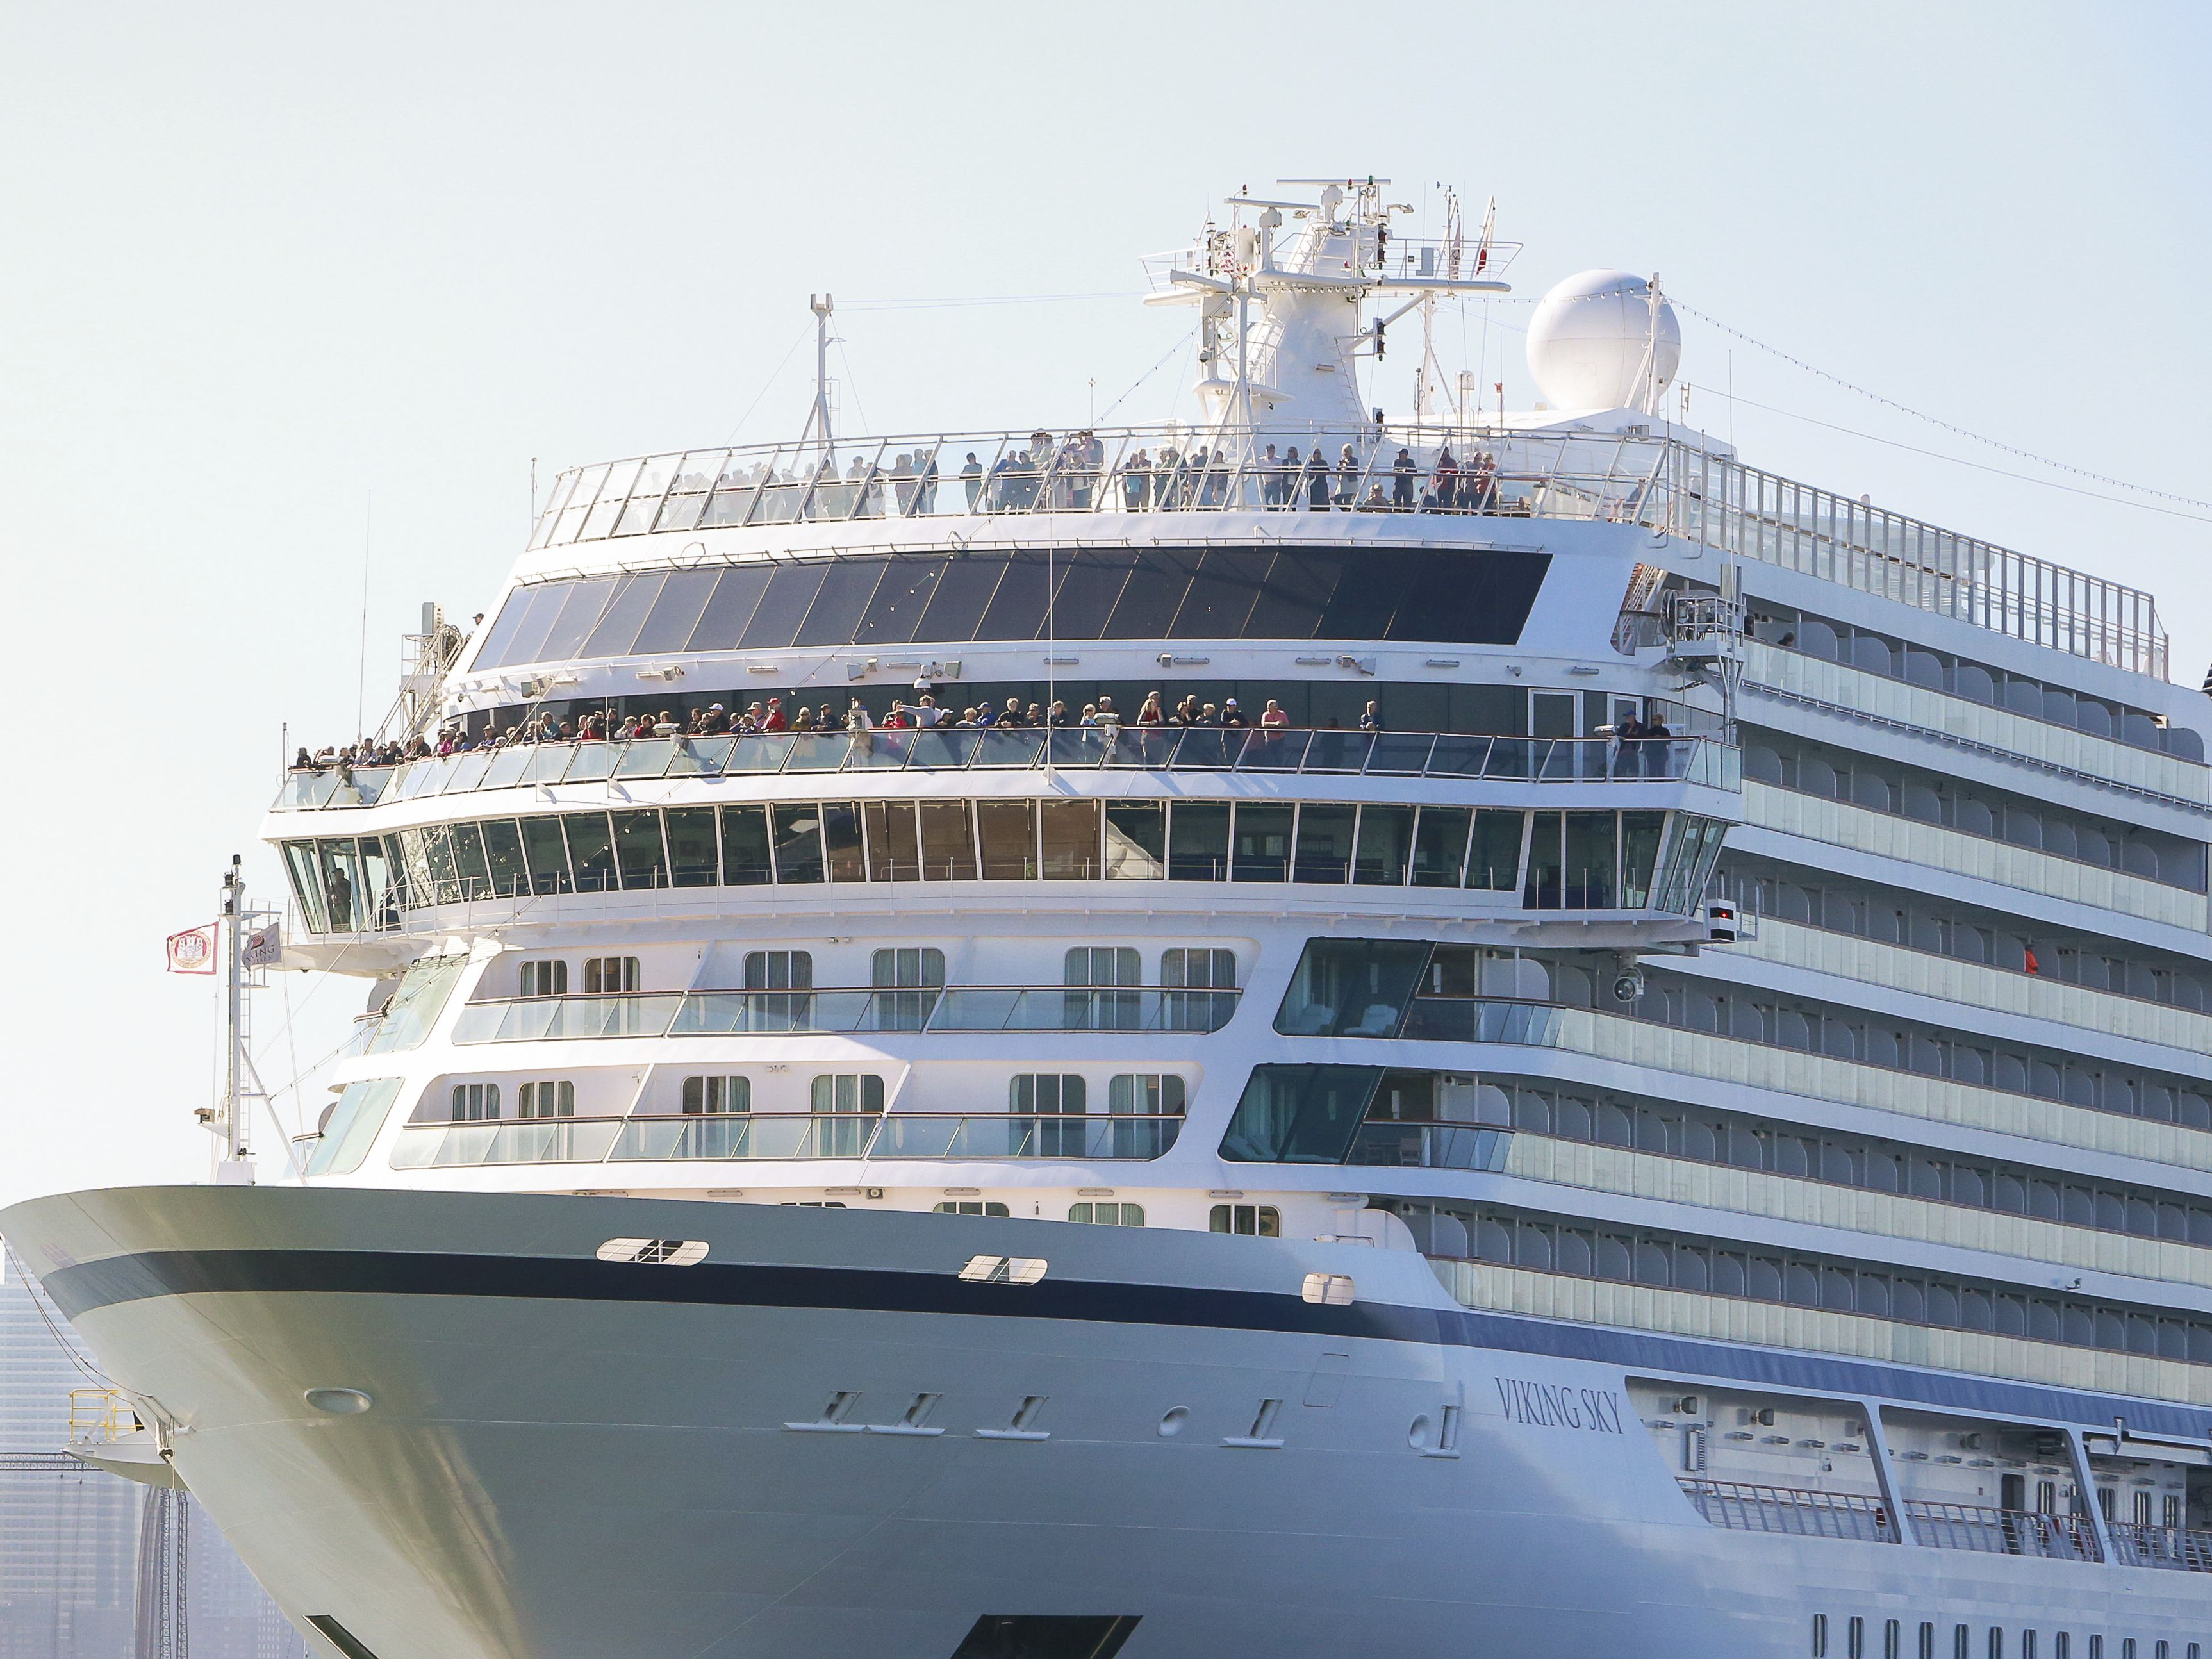 Rescue gets trickier for 1,300 aboard cruise ship in Norway as second ship needs help nearby